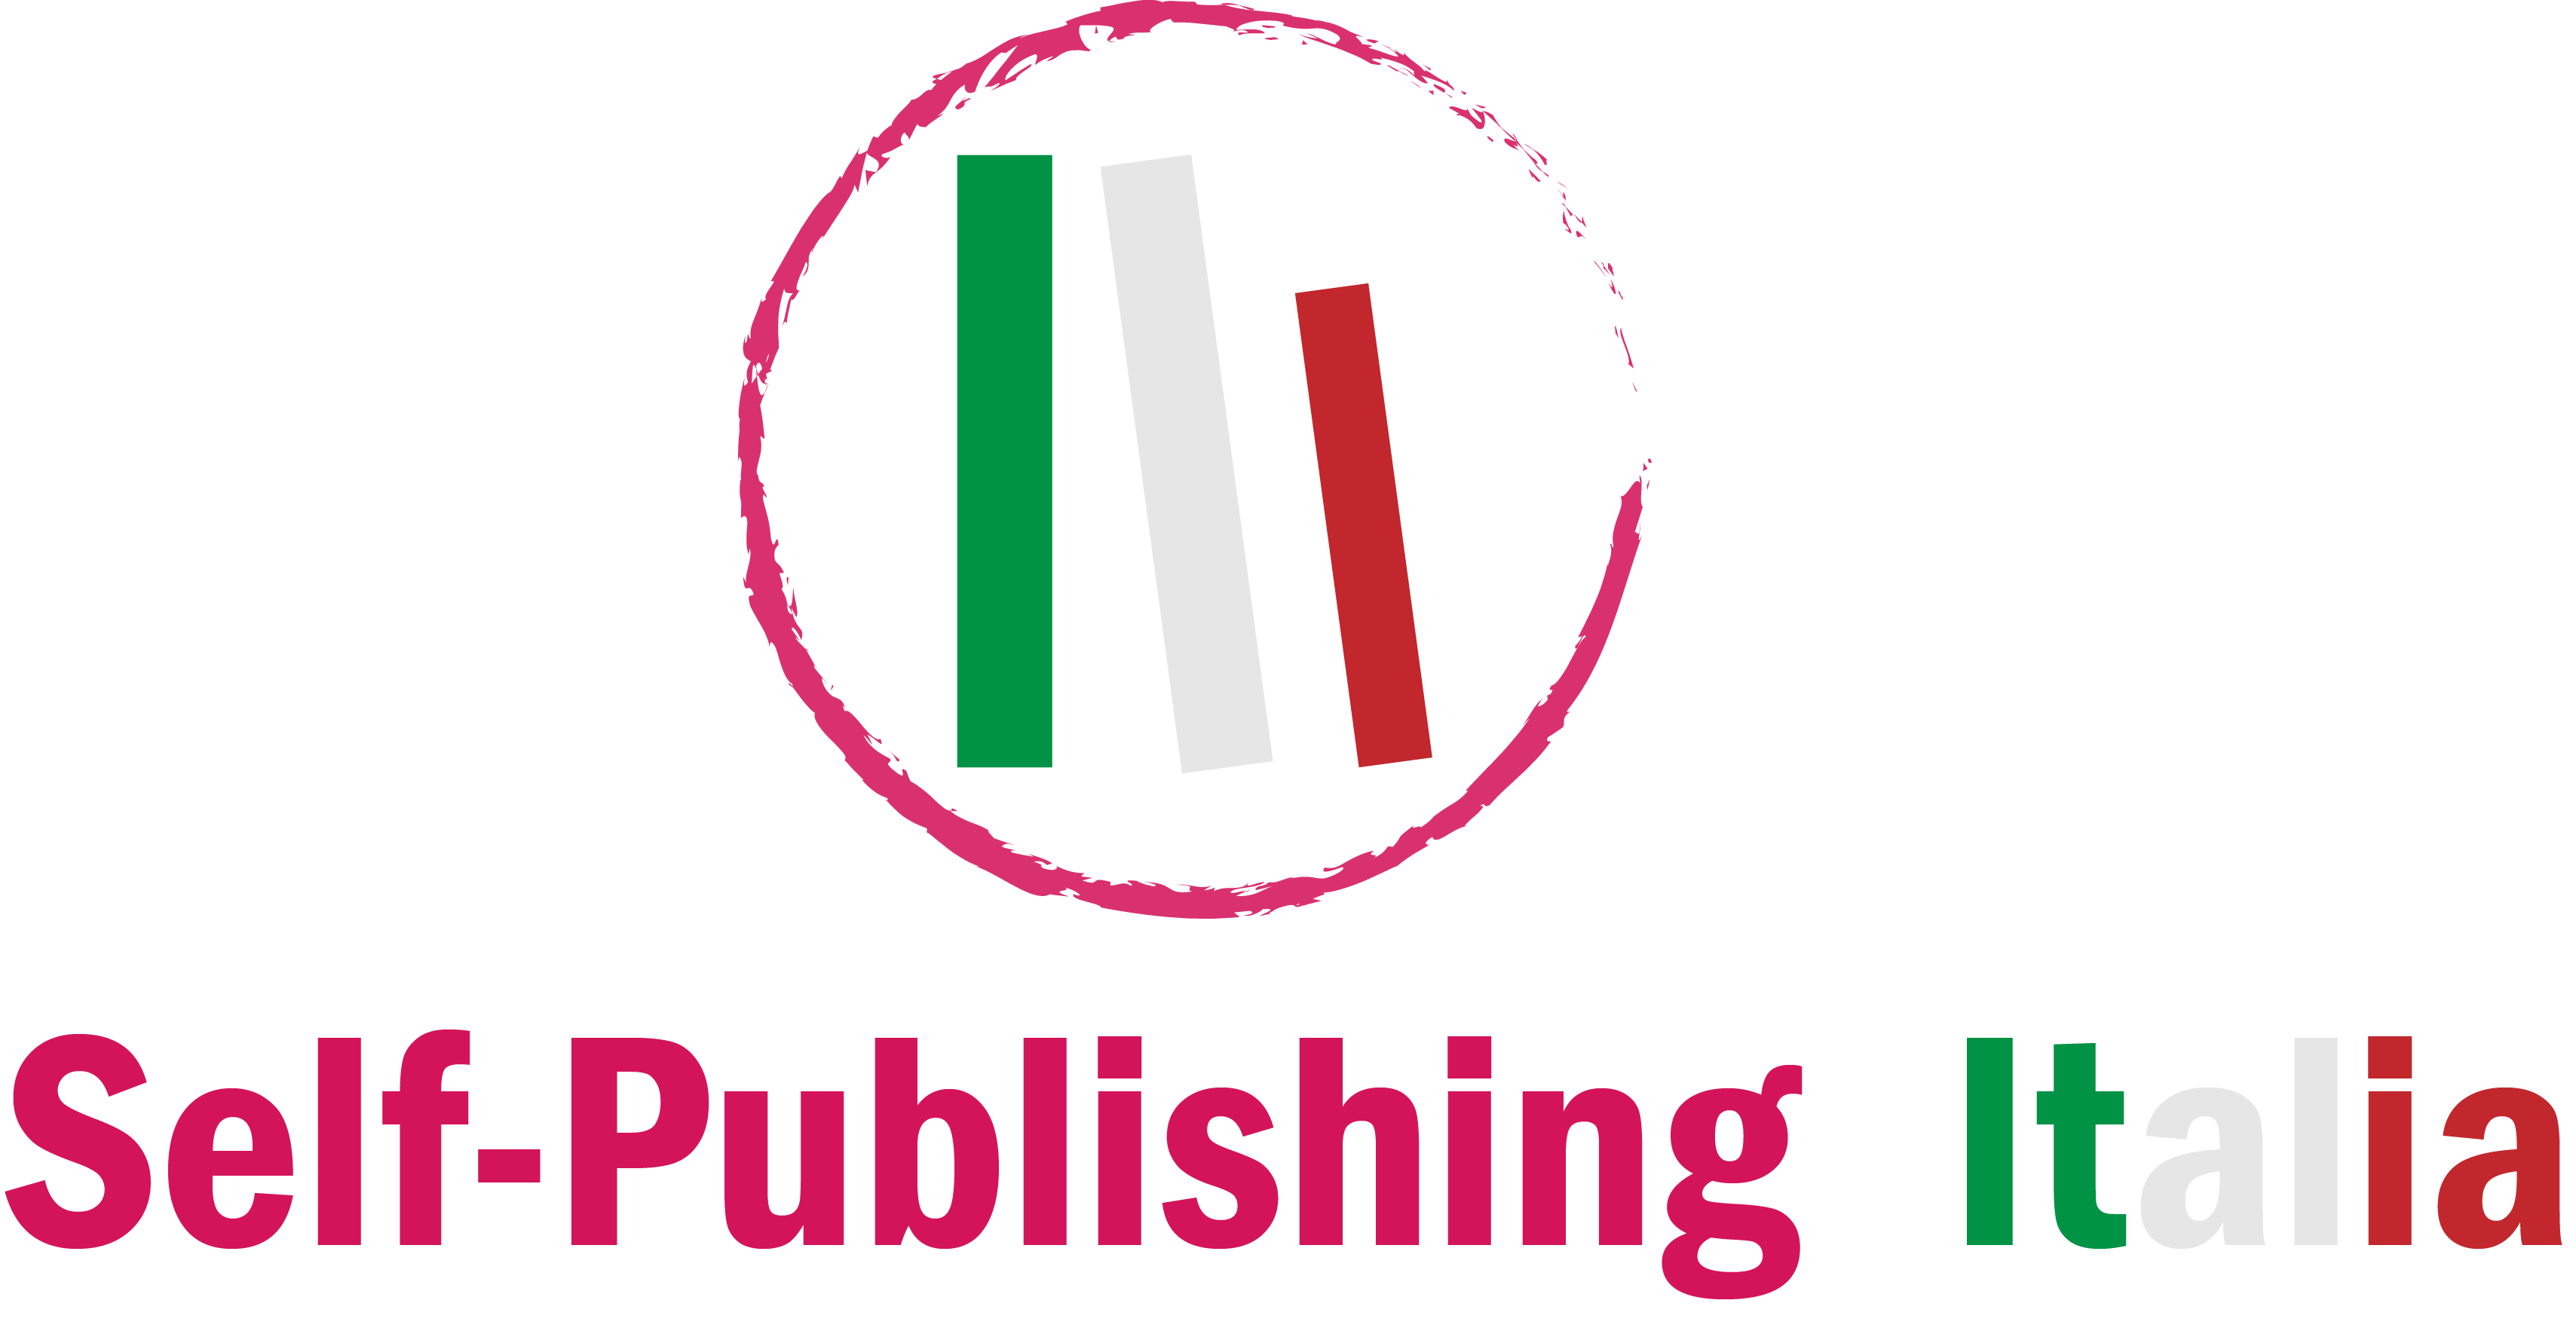 Self-Publishing Italia